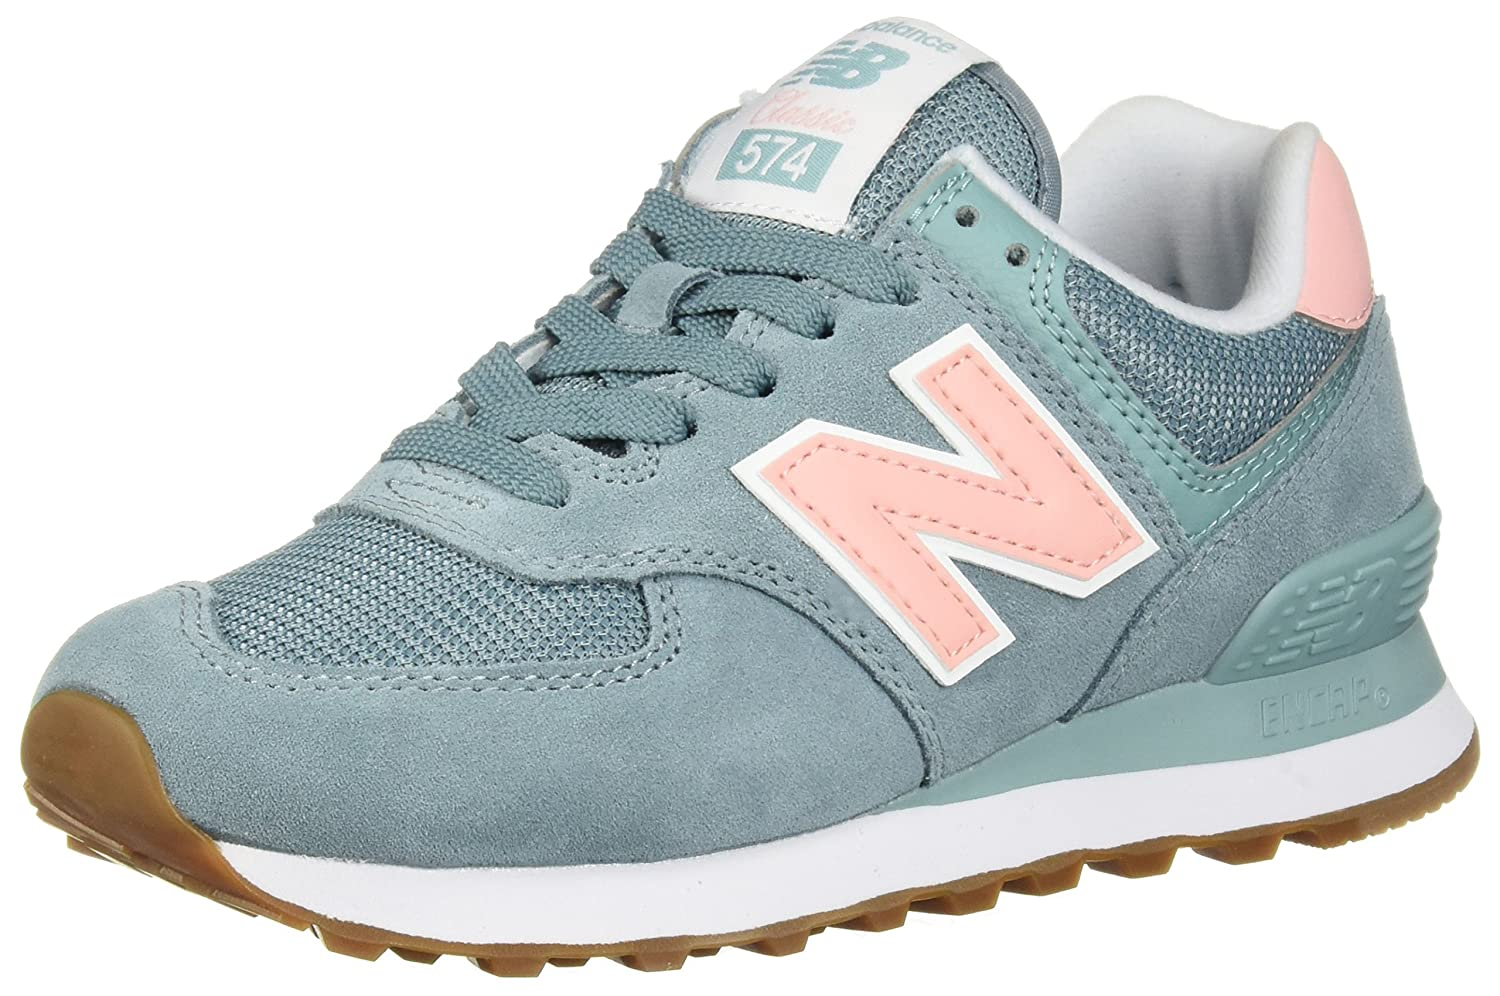 New Balance Wl574, Bottes Classiques Femme Flb) Gris Balance (Smoke Bottes Blue/Himalayan Pack/Mineral Sage Flb) ad67697 - gis9ma7le.space